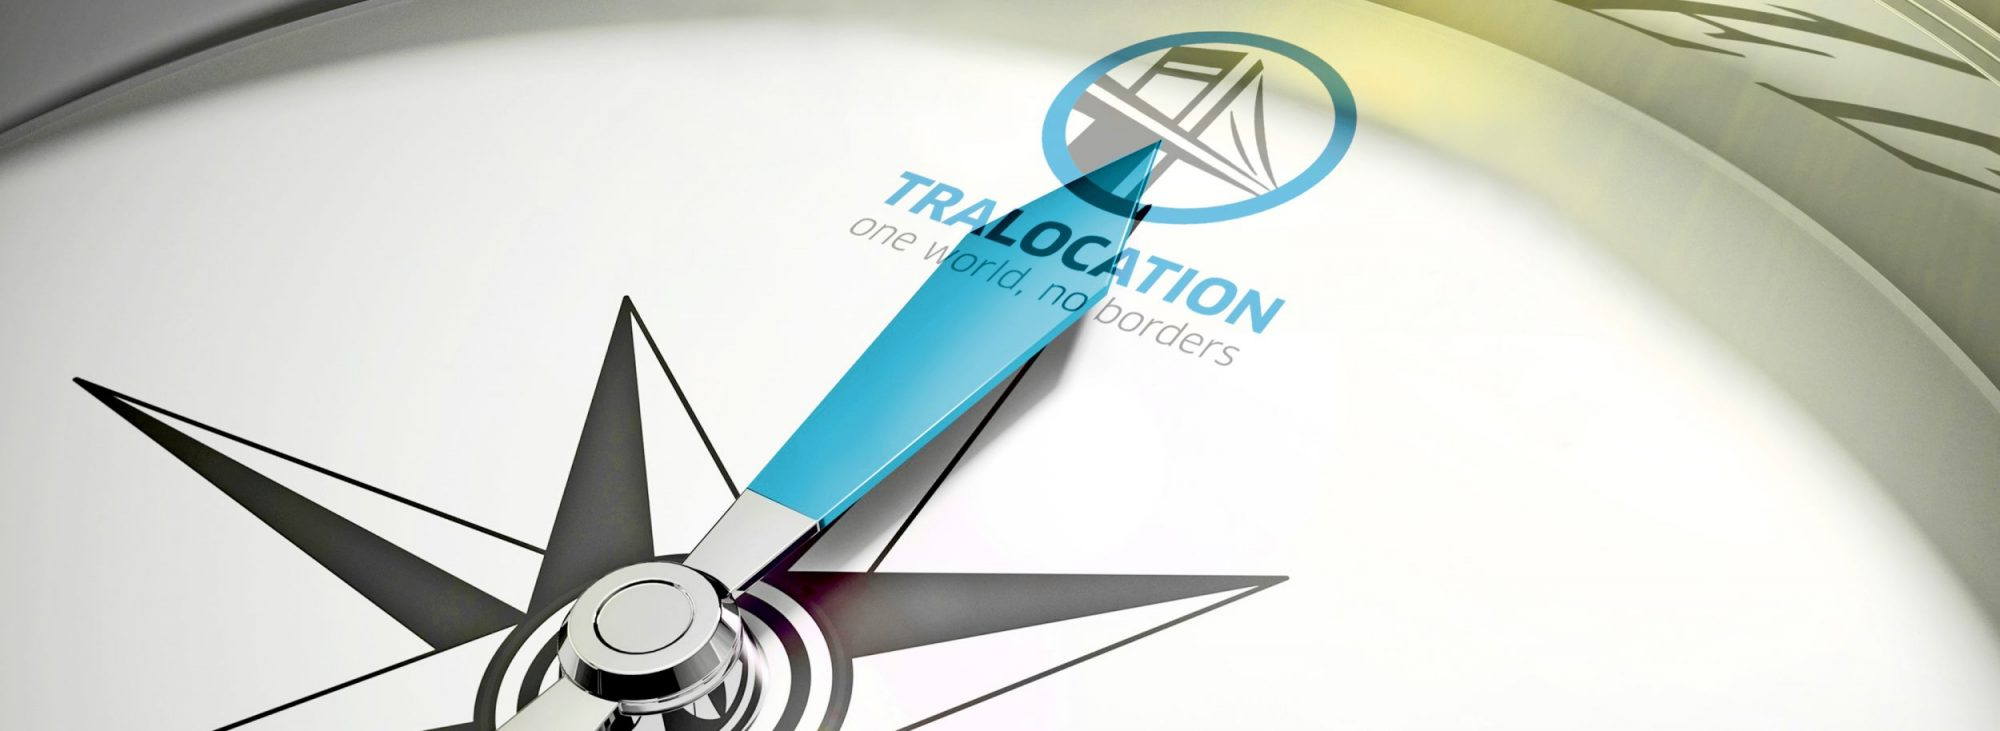 Tralocation GmbH - Header 02